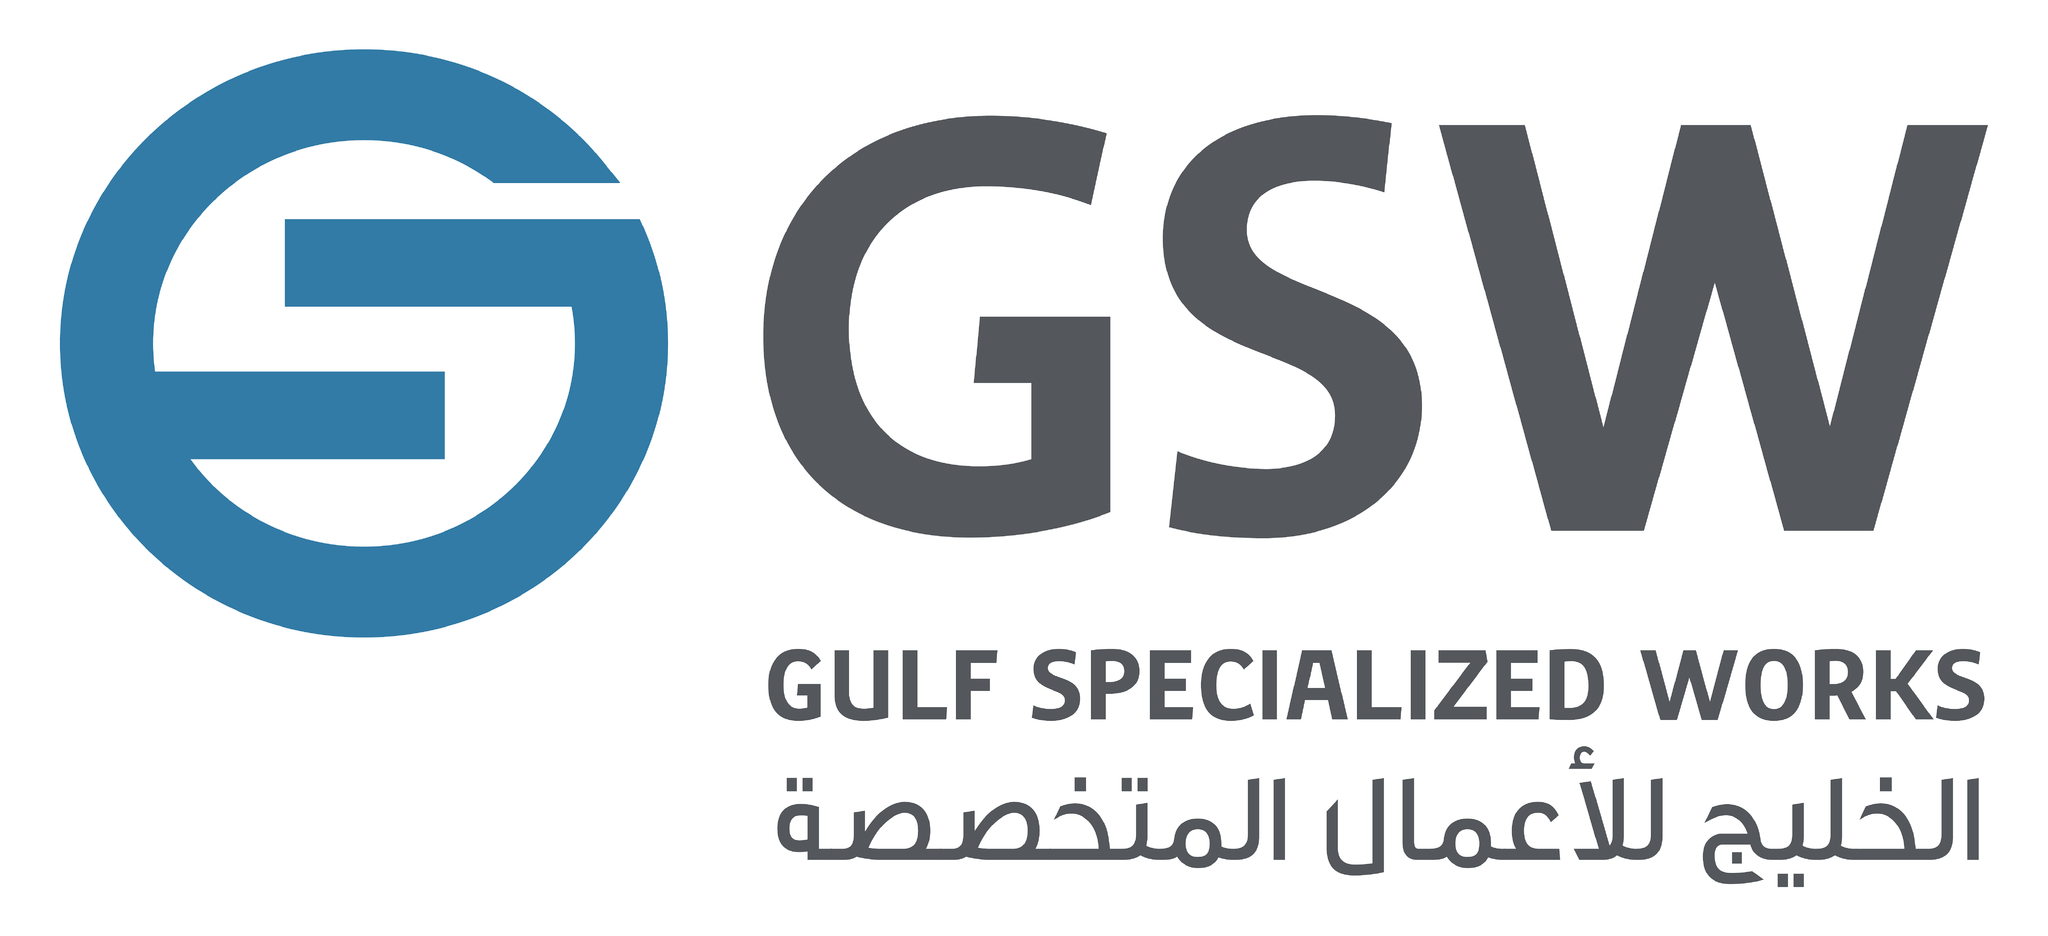 GULF SPECIALIZED WORKS